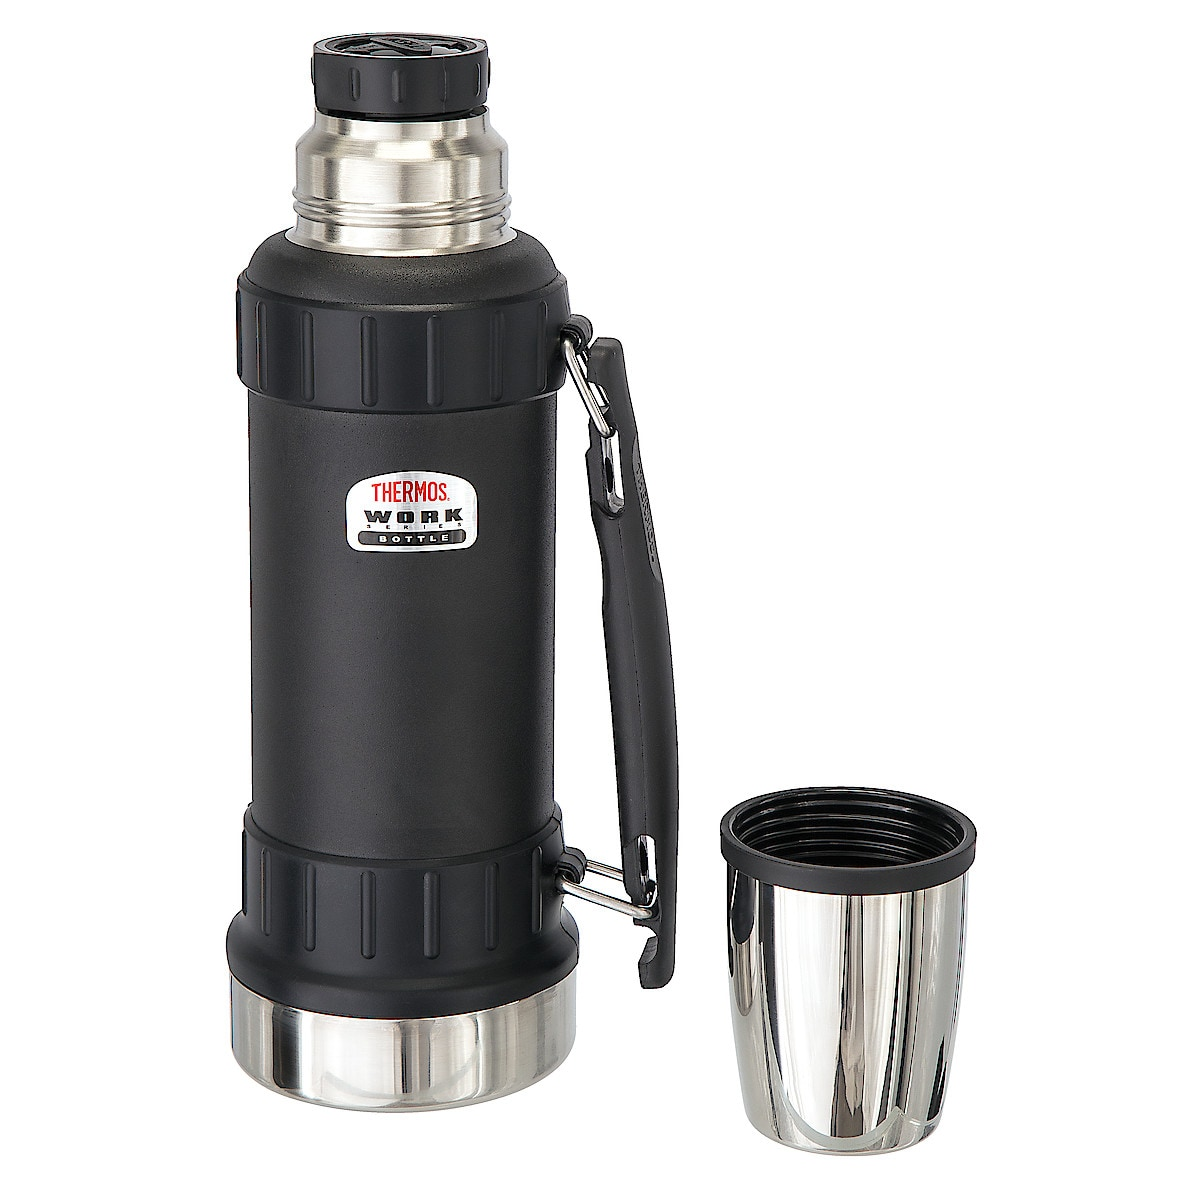 Thermos Work series 1.2 L Vacuum Flask